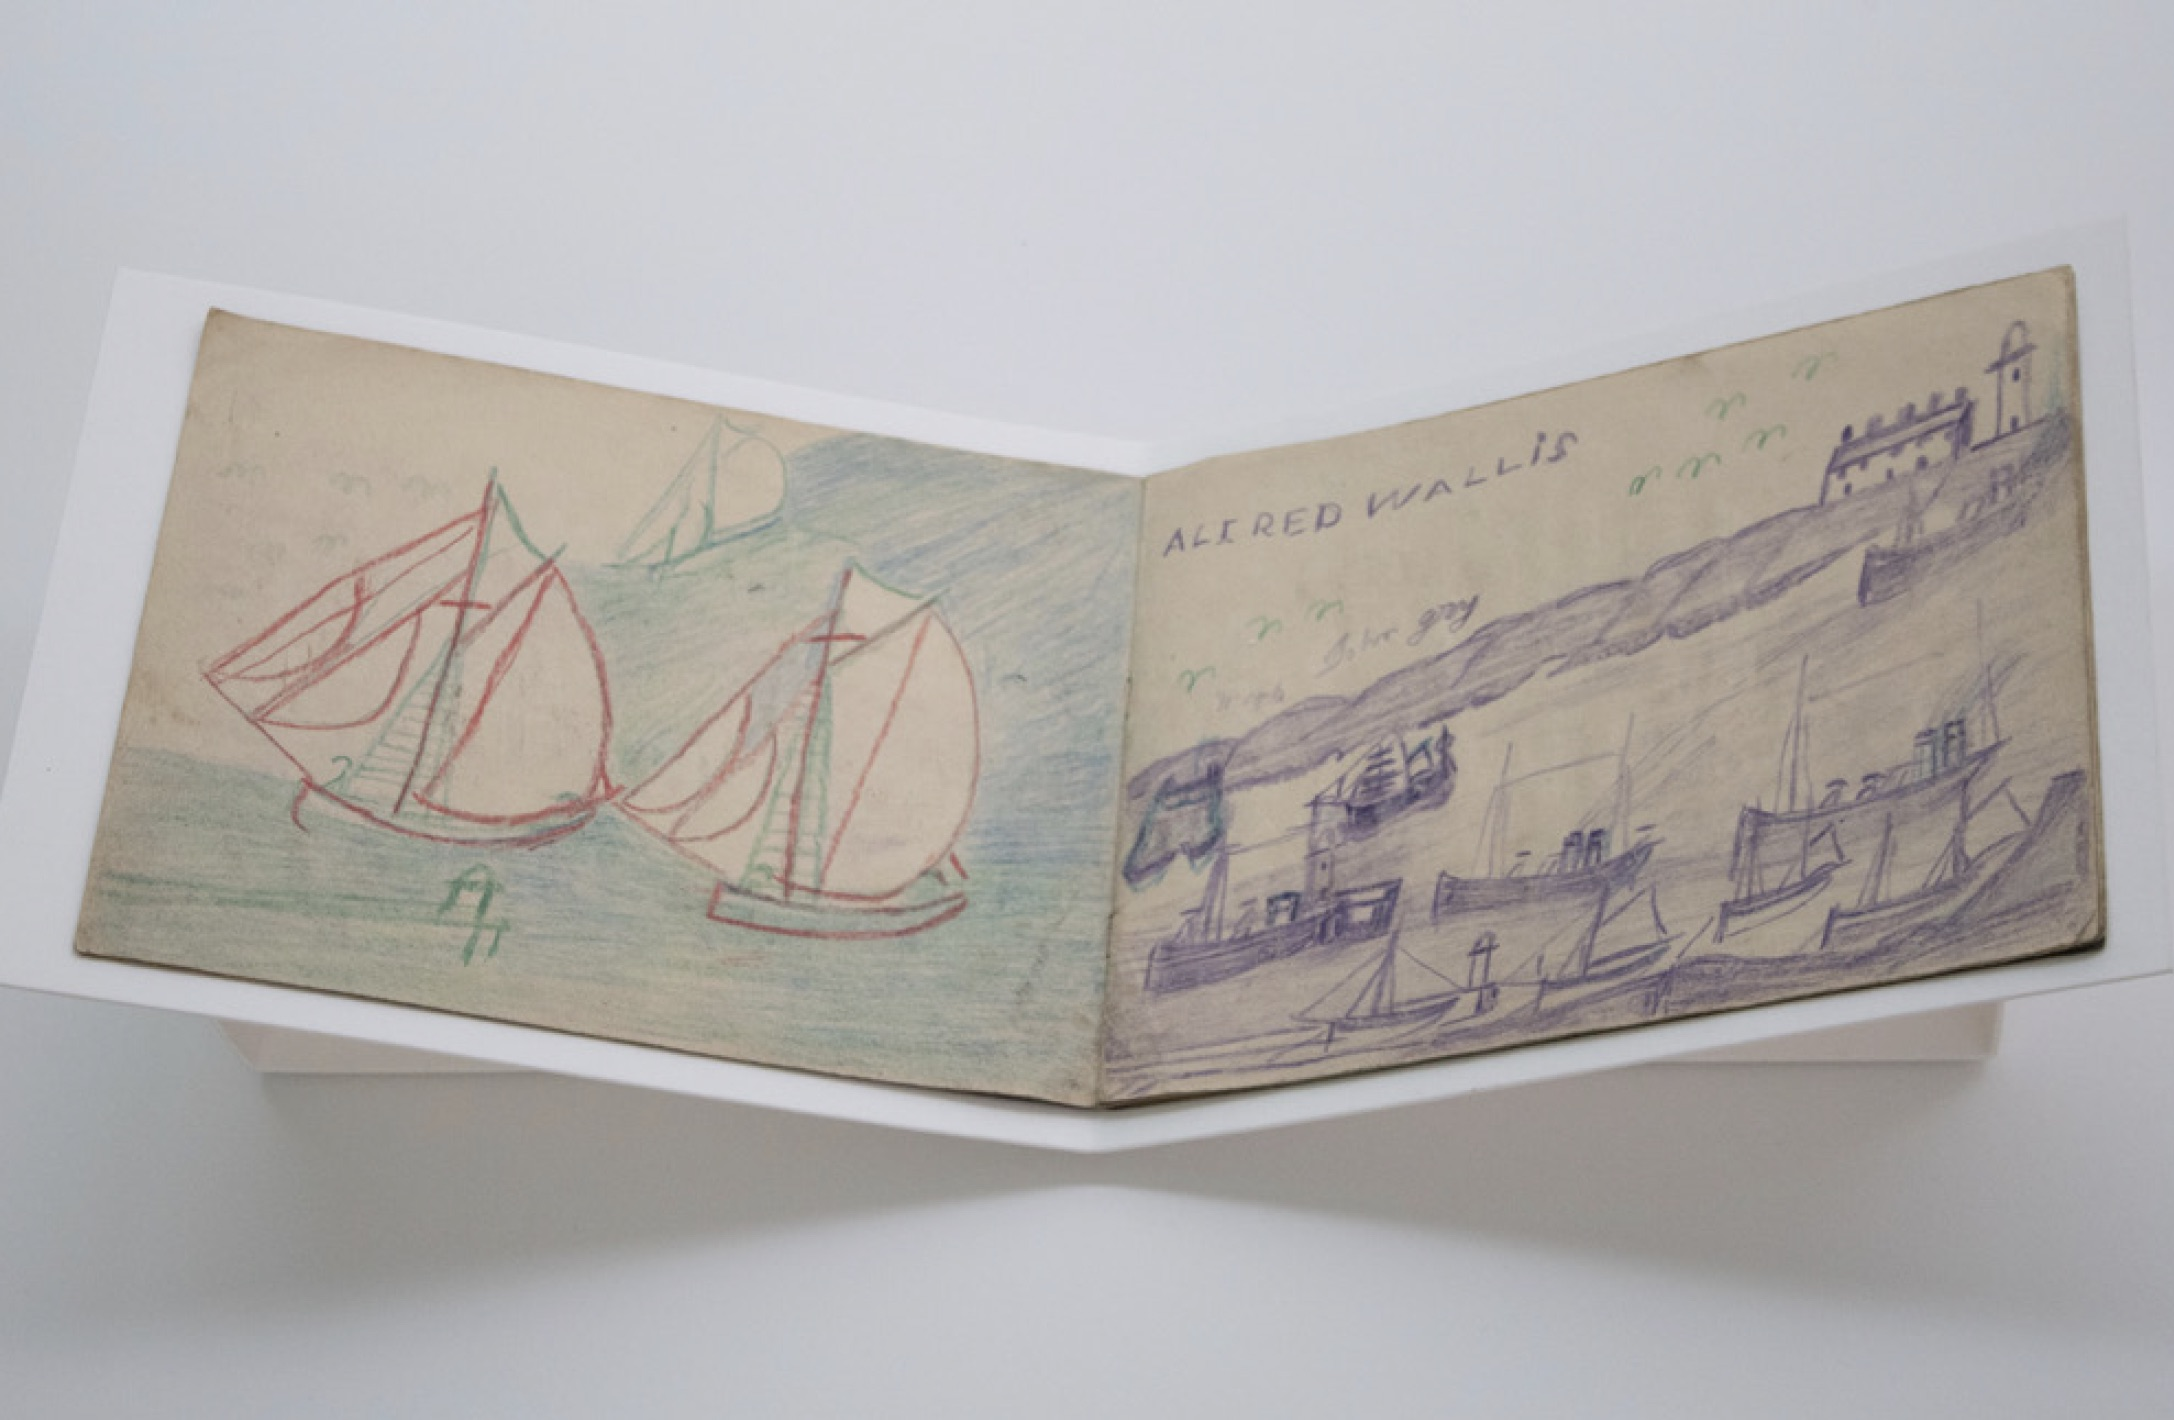 Some pages in Alfred Wallis sketchbooks